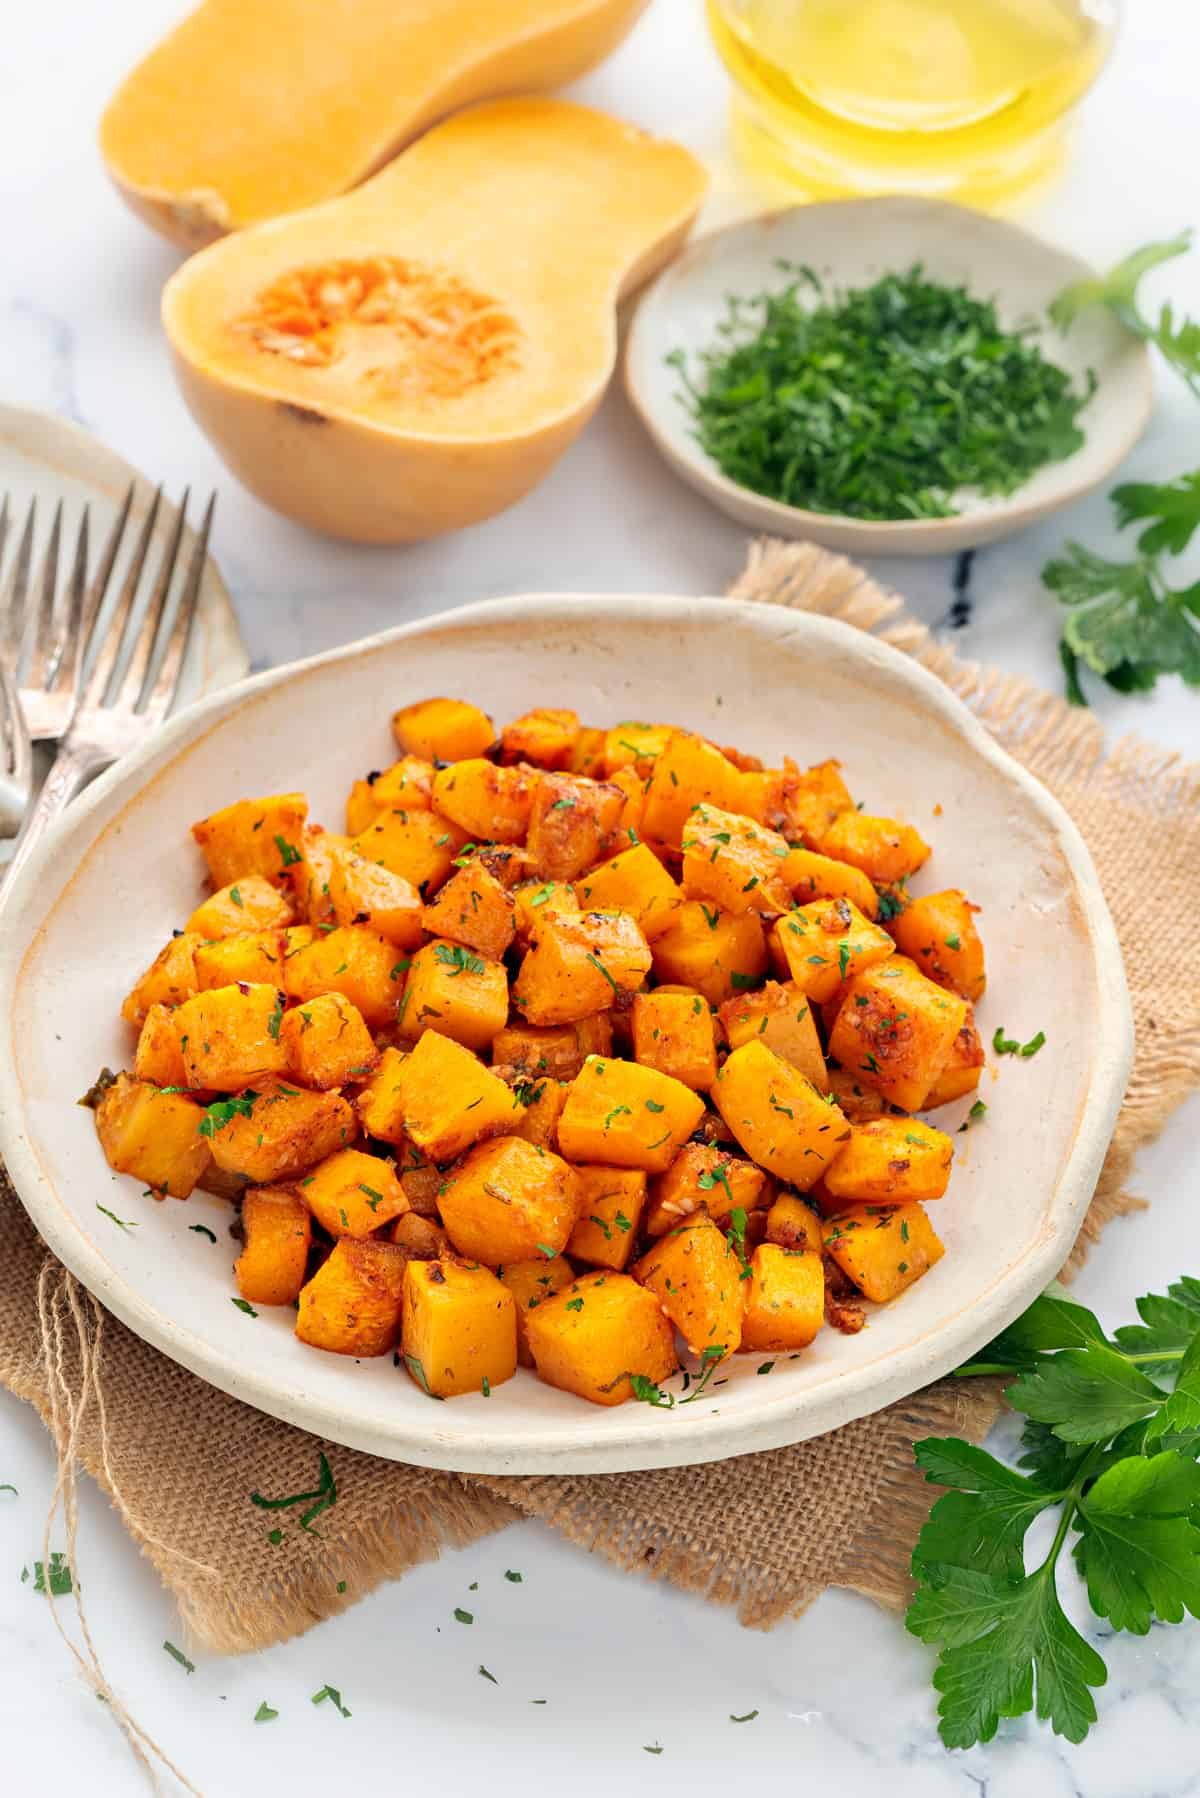 Roasted butternut squash cubes in white ceramic plate, cut squash and parsley placed at the back.